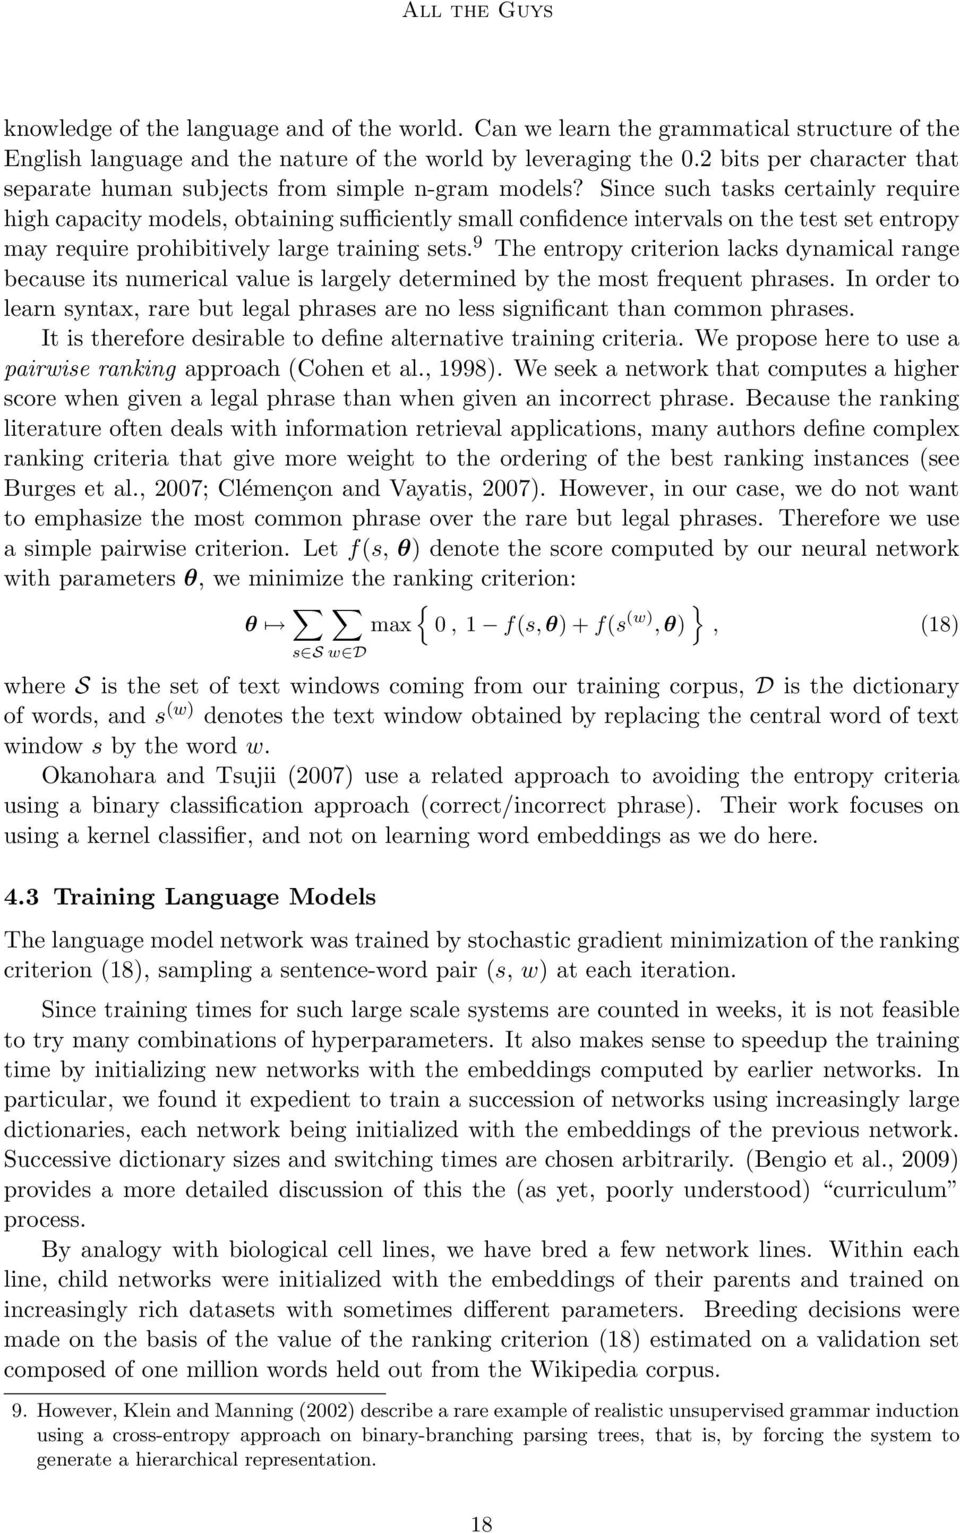 Since such tasks certainly require high capacity models, obtaining sufficiently small confidence intervals on the test set entropy may require prohibitively large training sets.